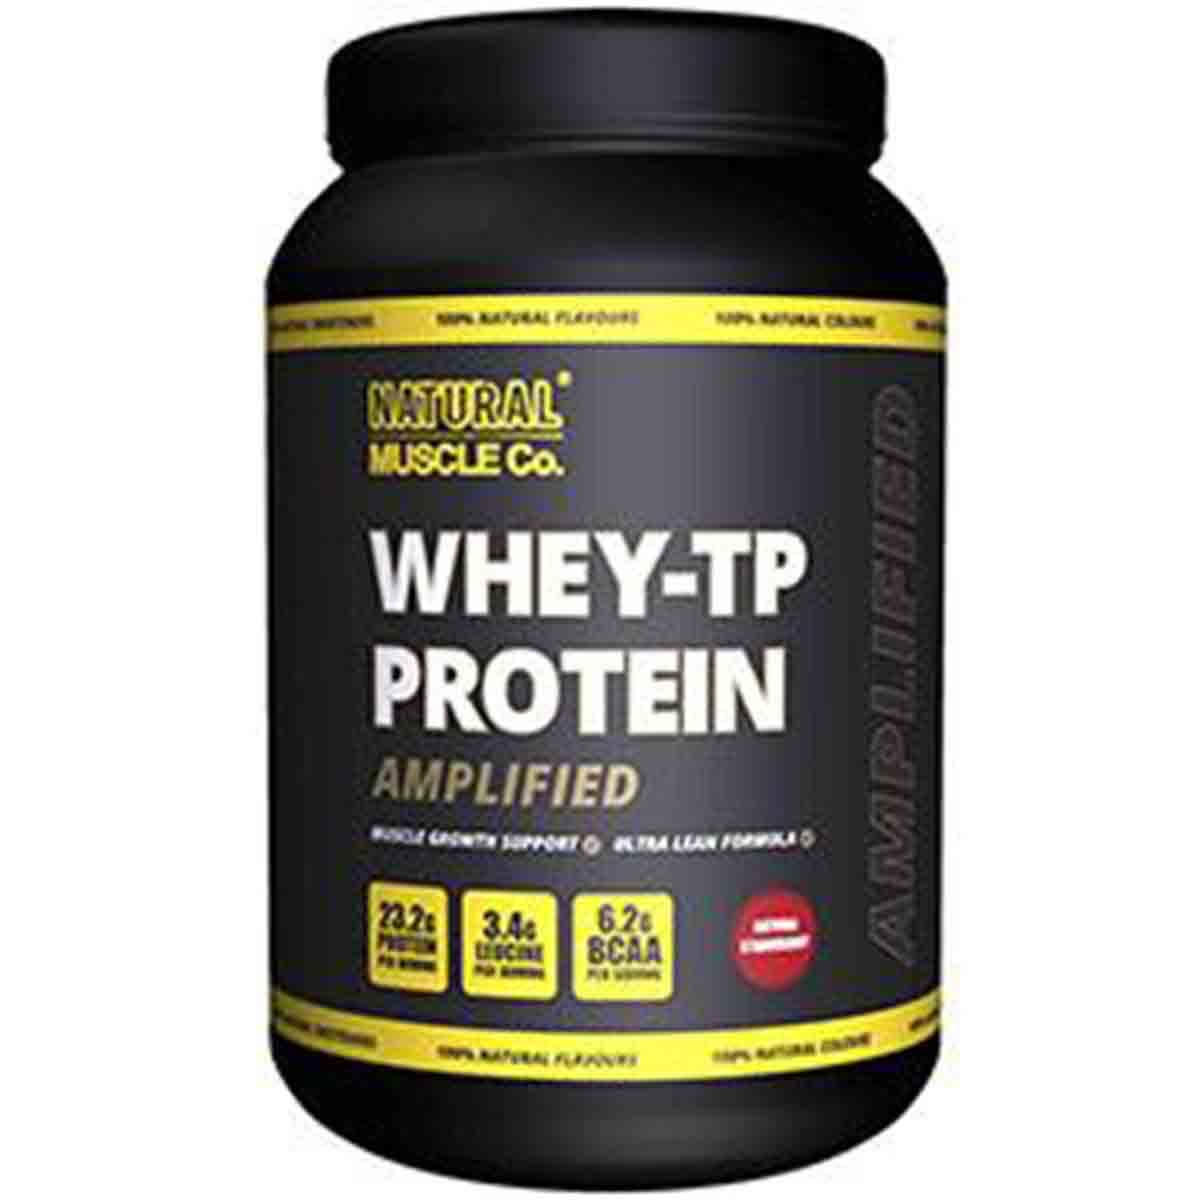 Whey-TP Protein Amplified